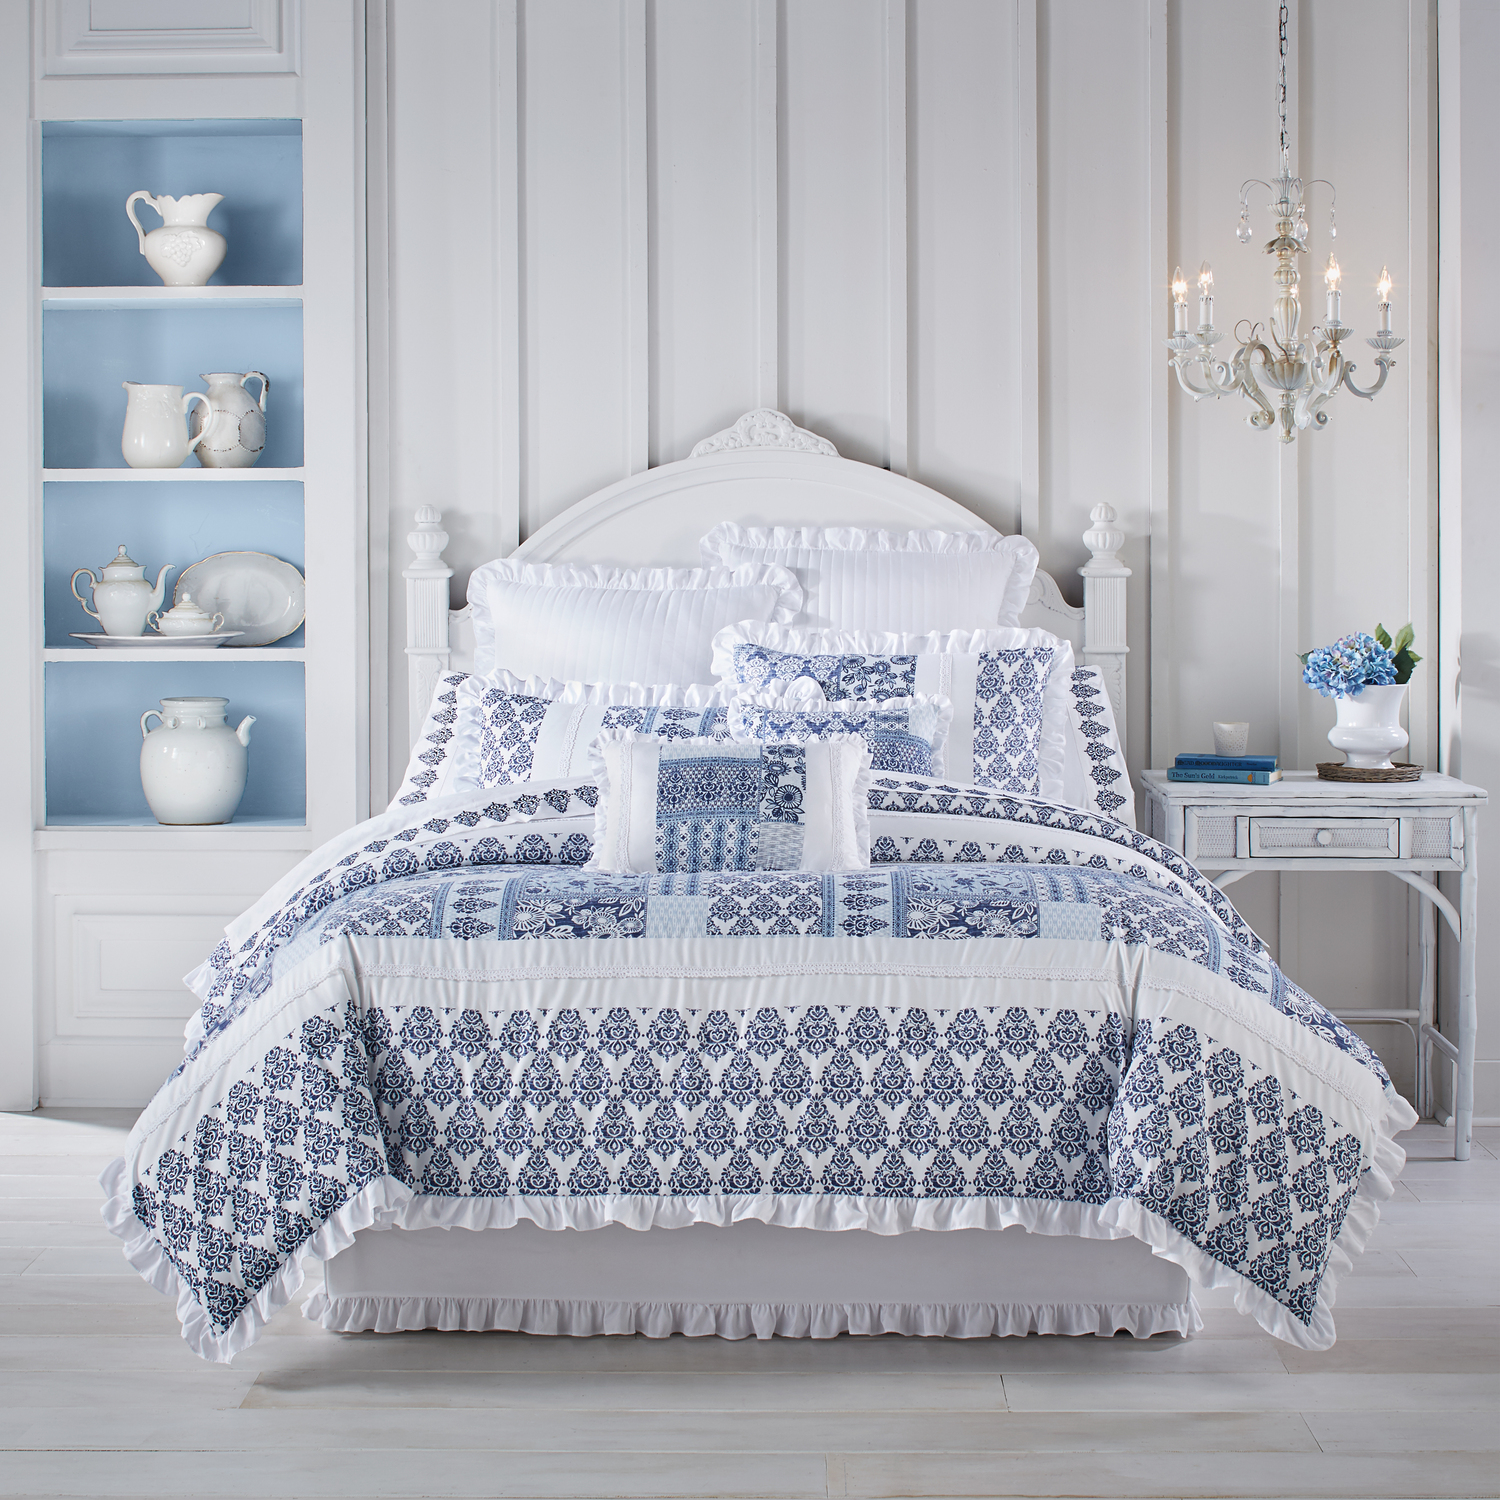 Tessa by Royal Court Bedding